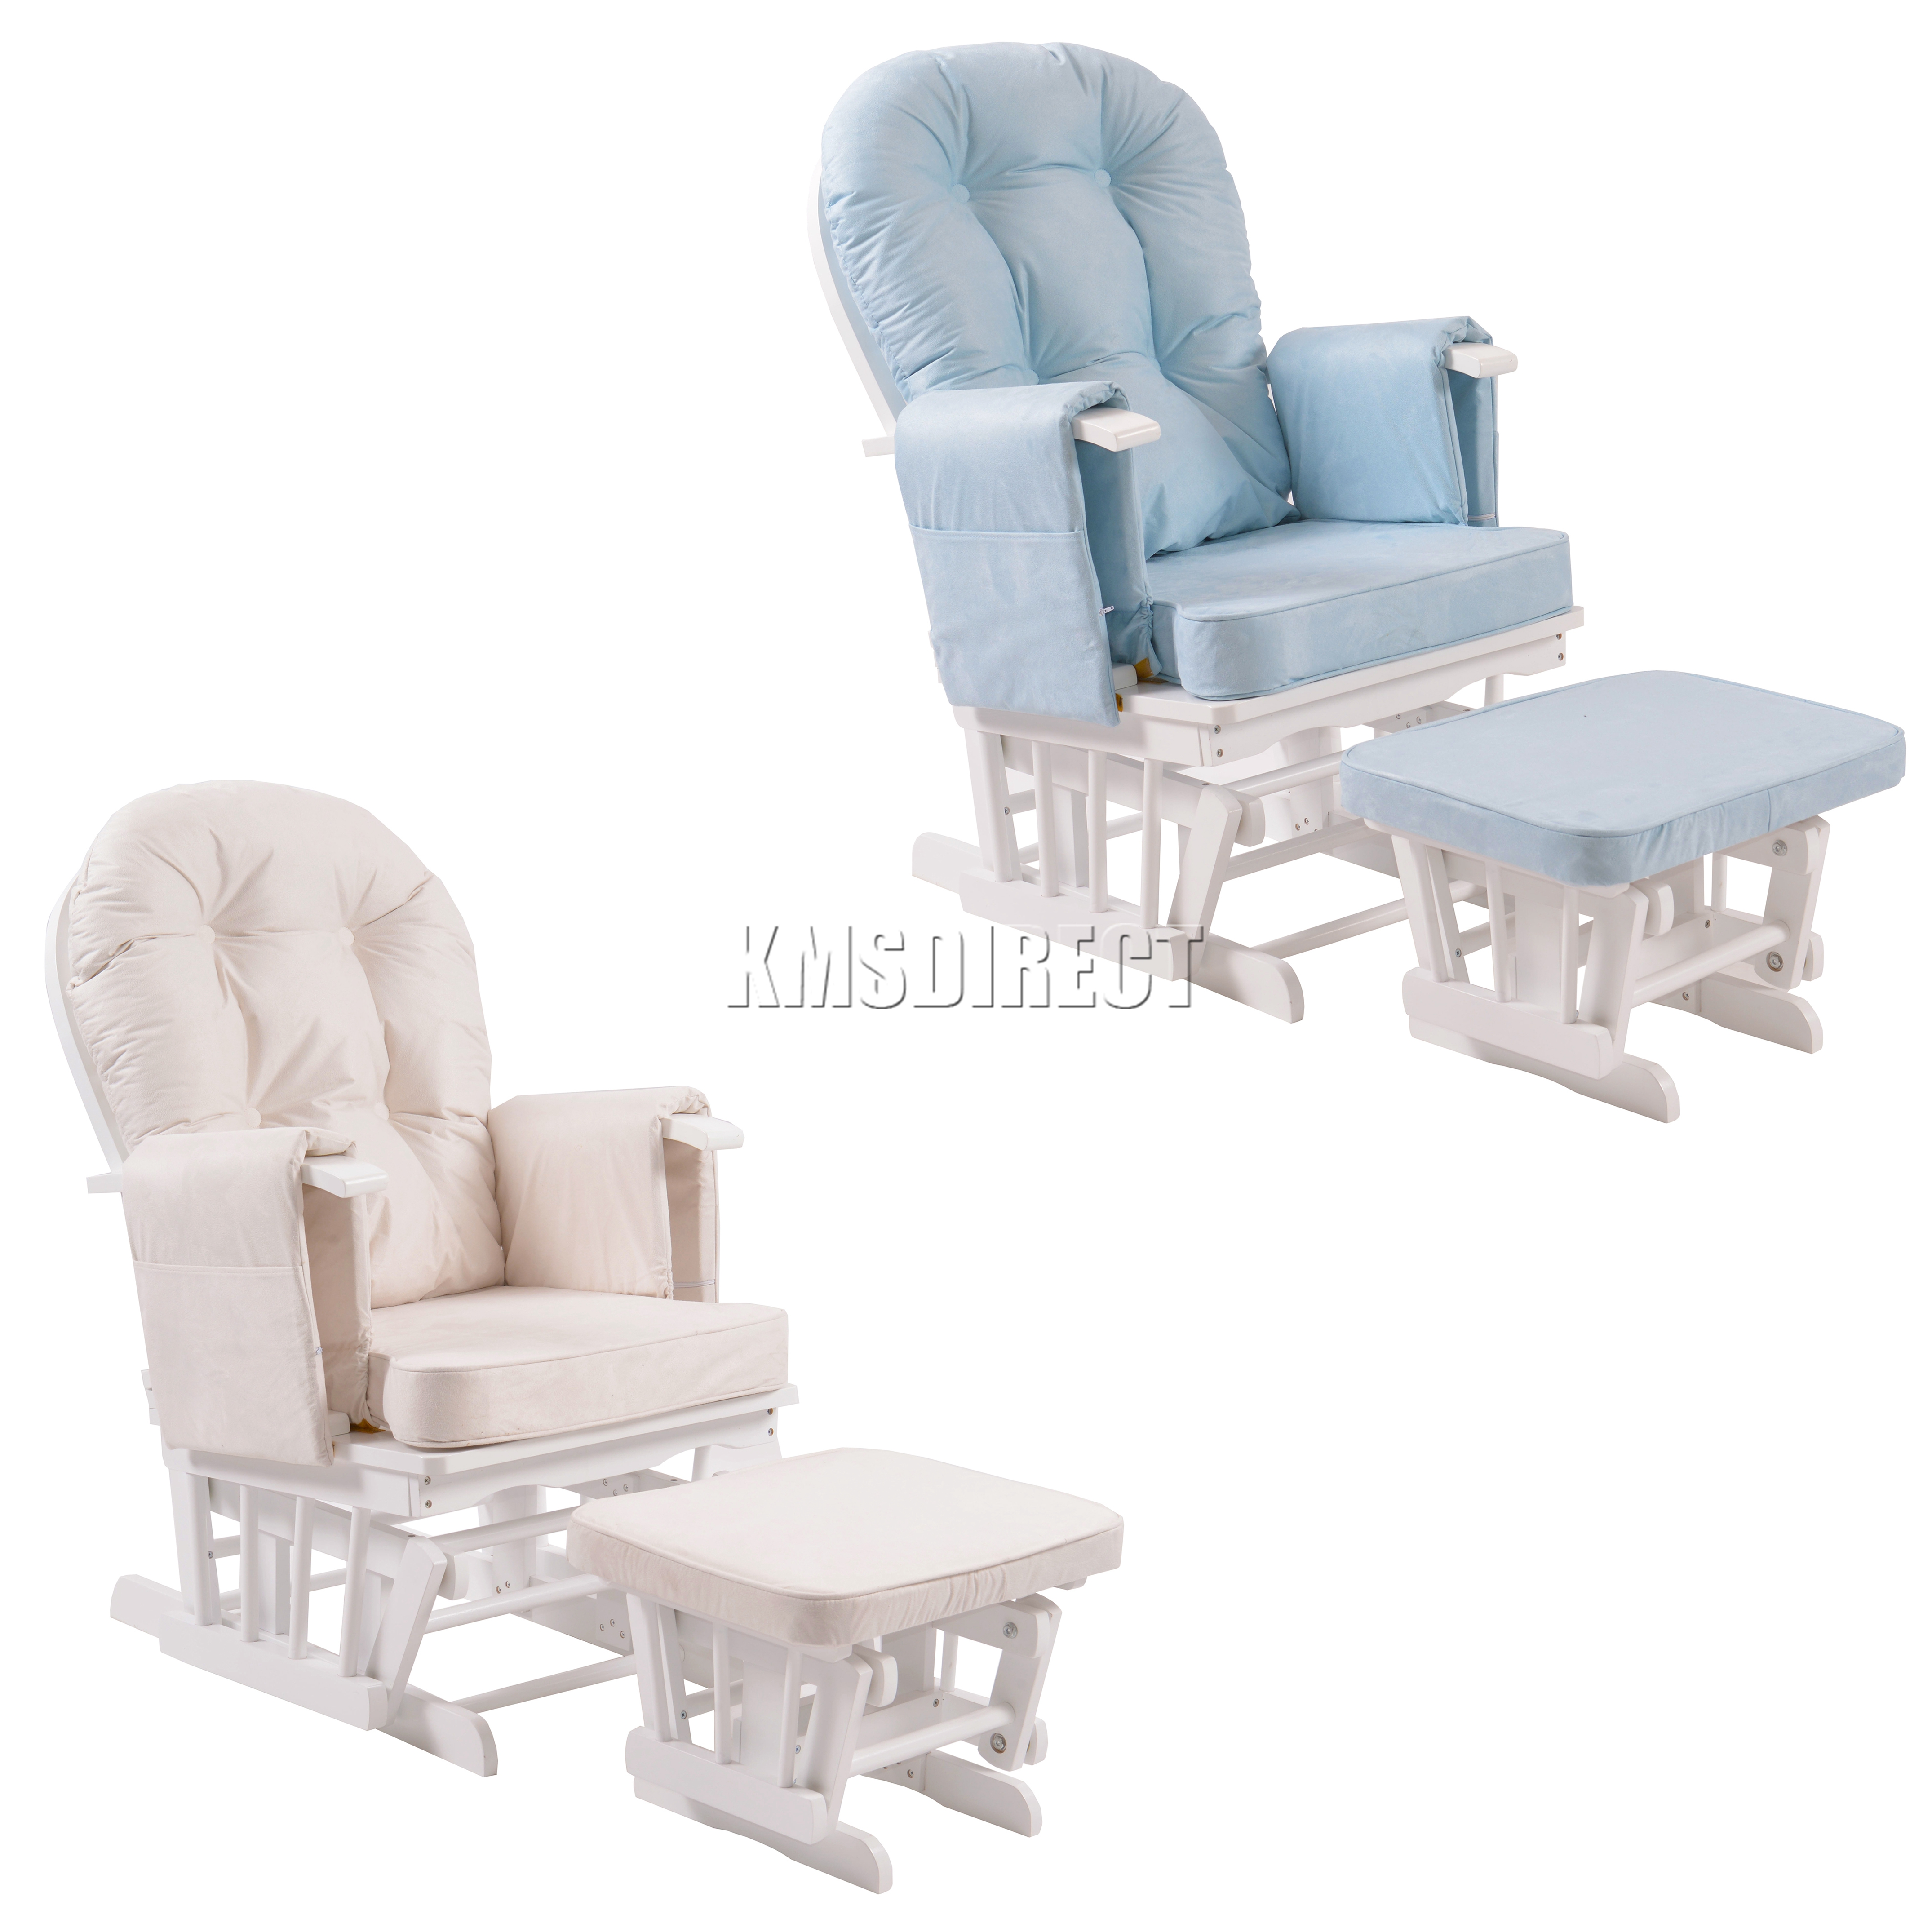 Gliding chair mechanism - Foxhunter Nursing Glider Maternity Rocking Chair With Stool White Wood Frame New